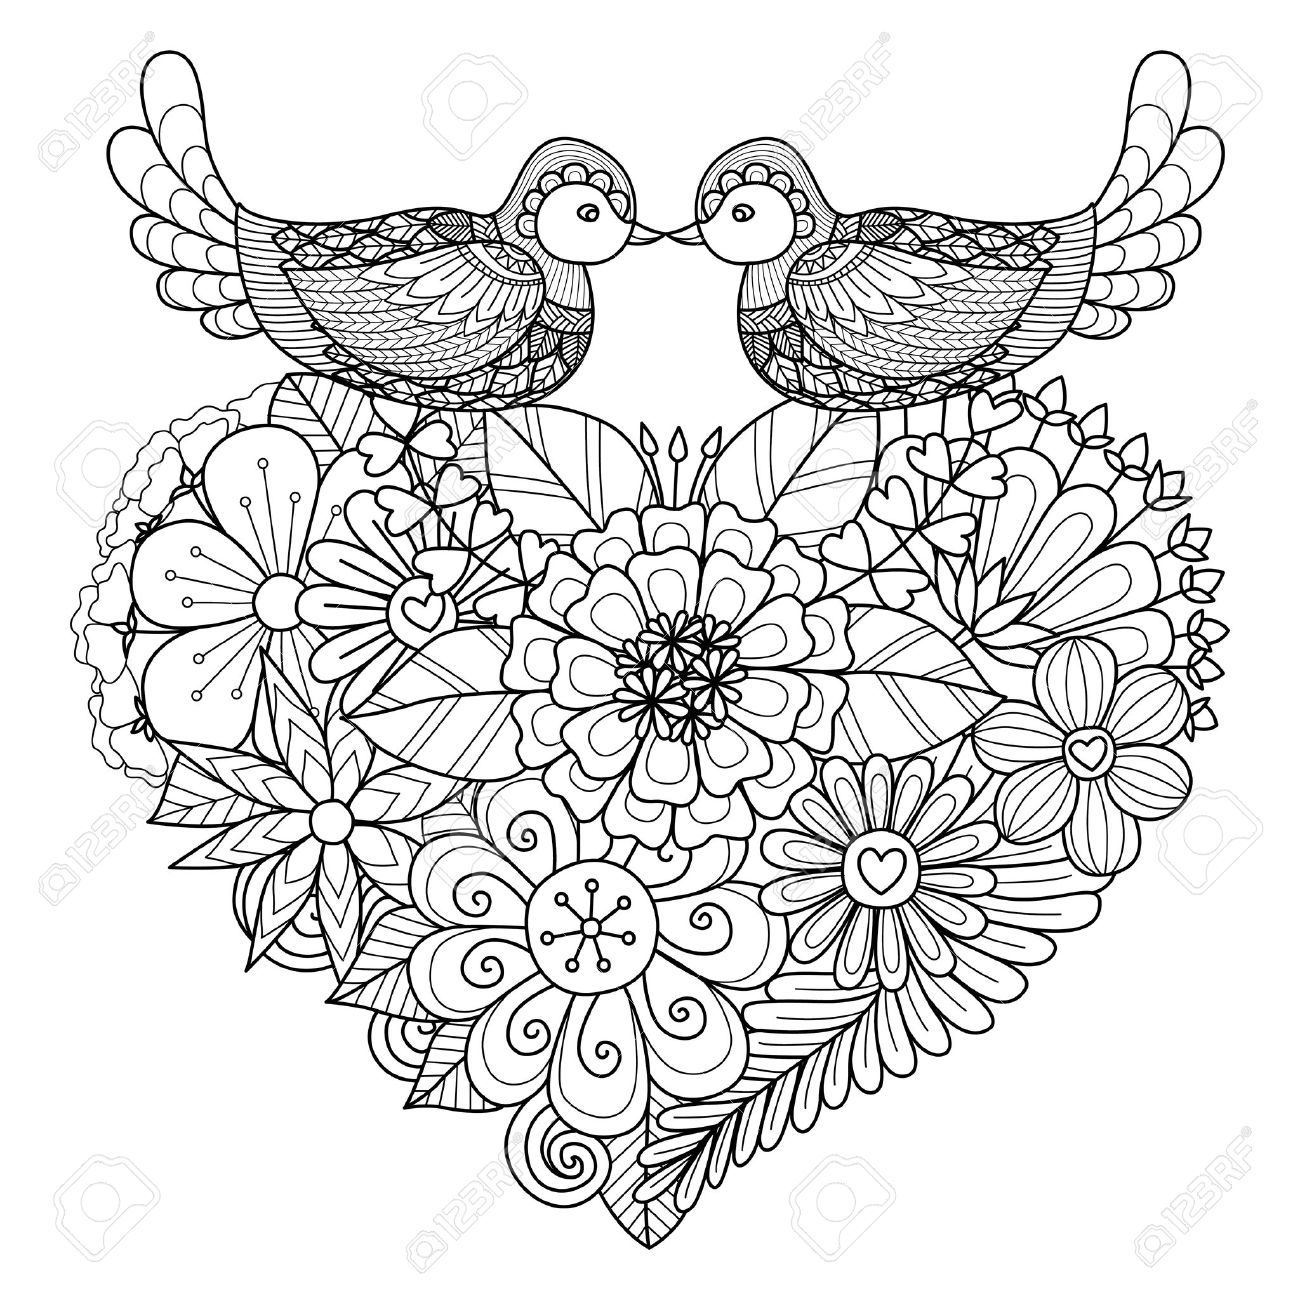 Two Birds Kissing Above Floral Heart Shape Nest For Coloring